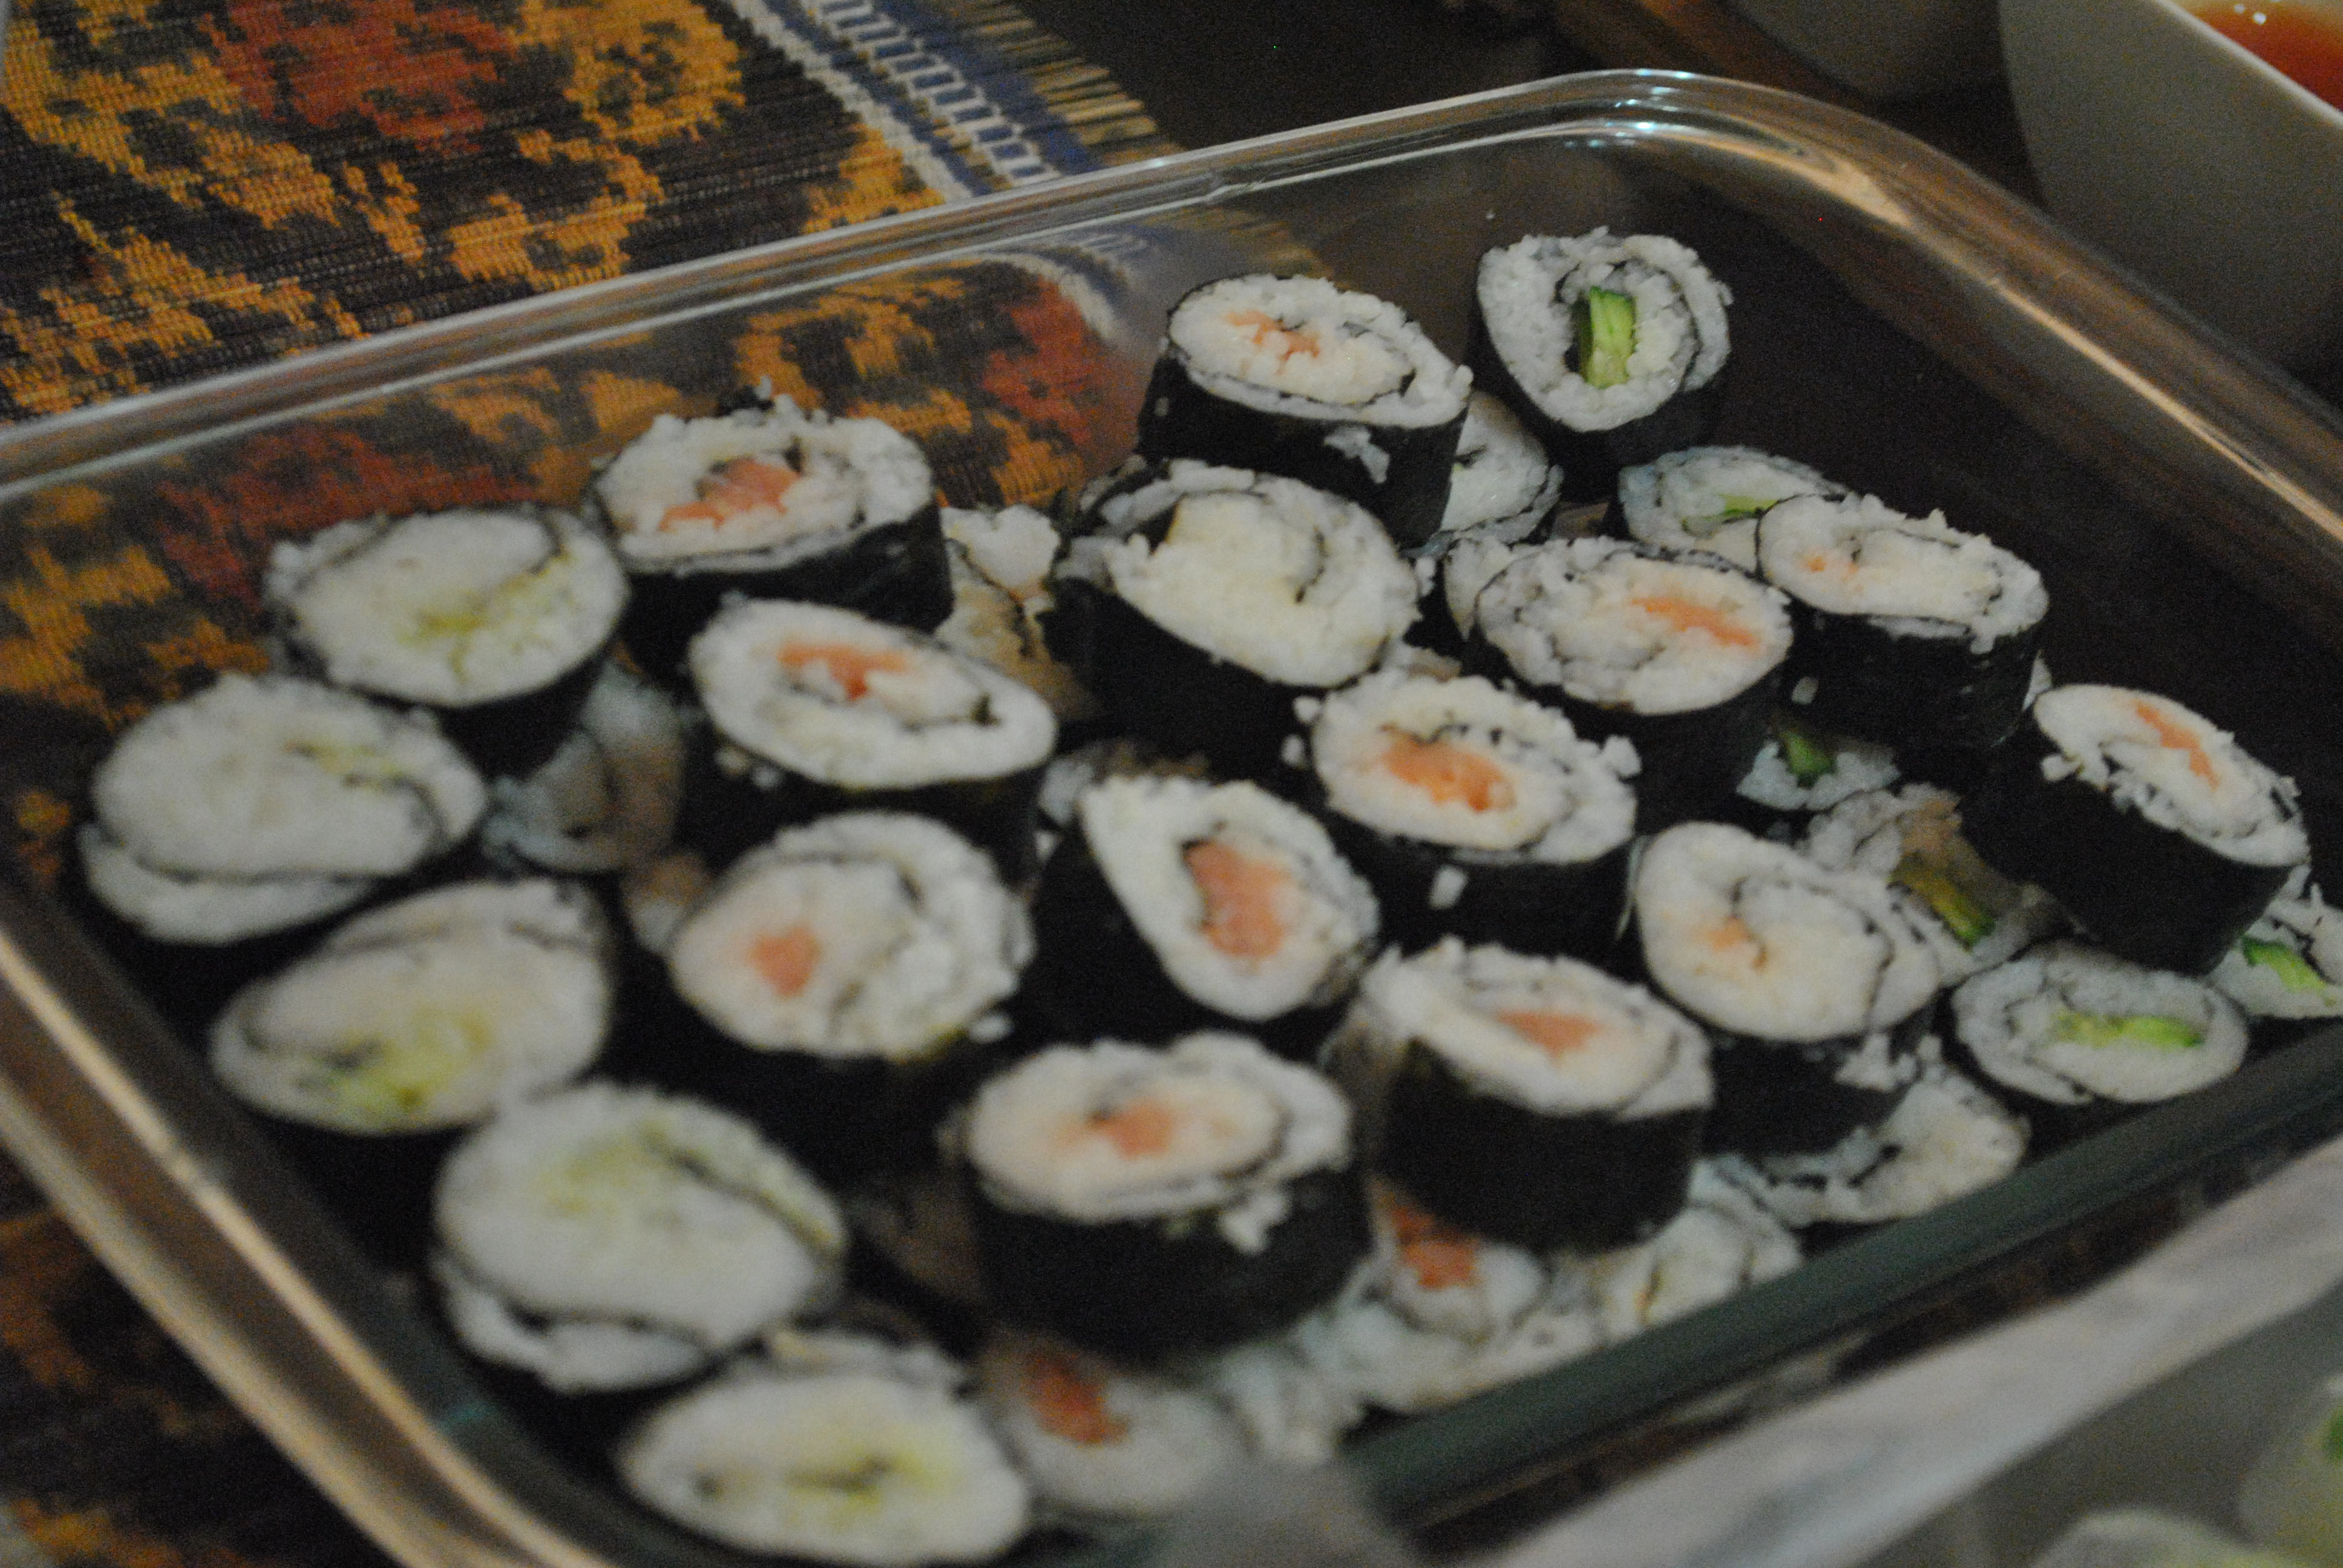 Sushi with salmon, avocado, and cucumber